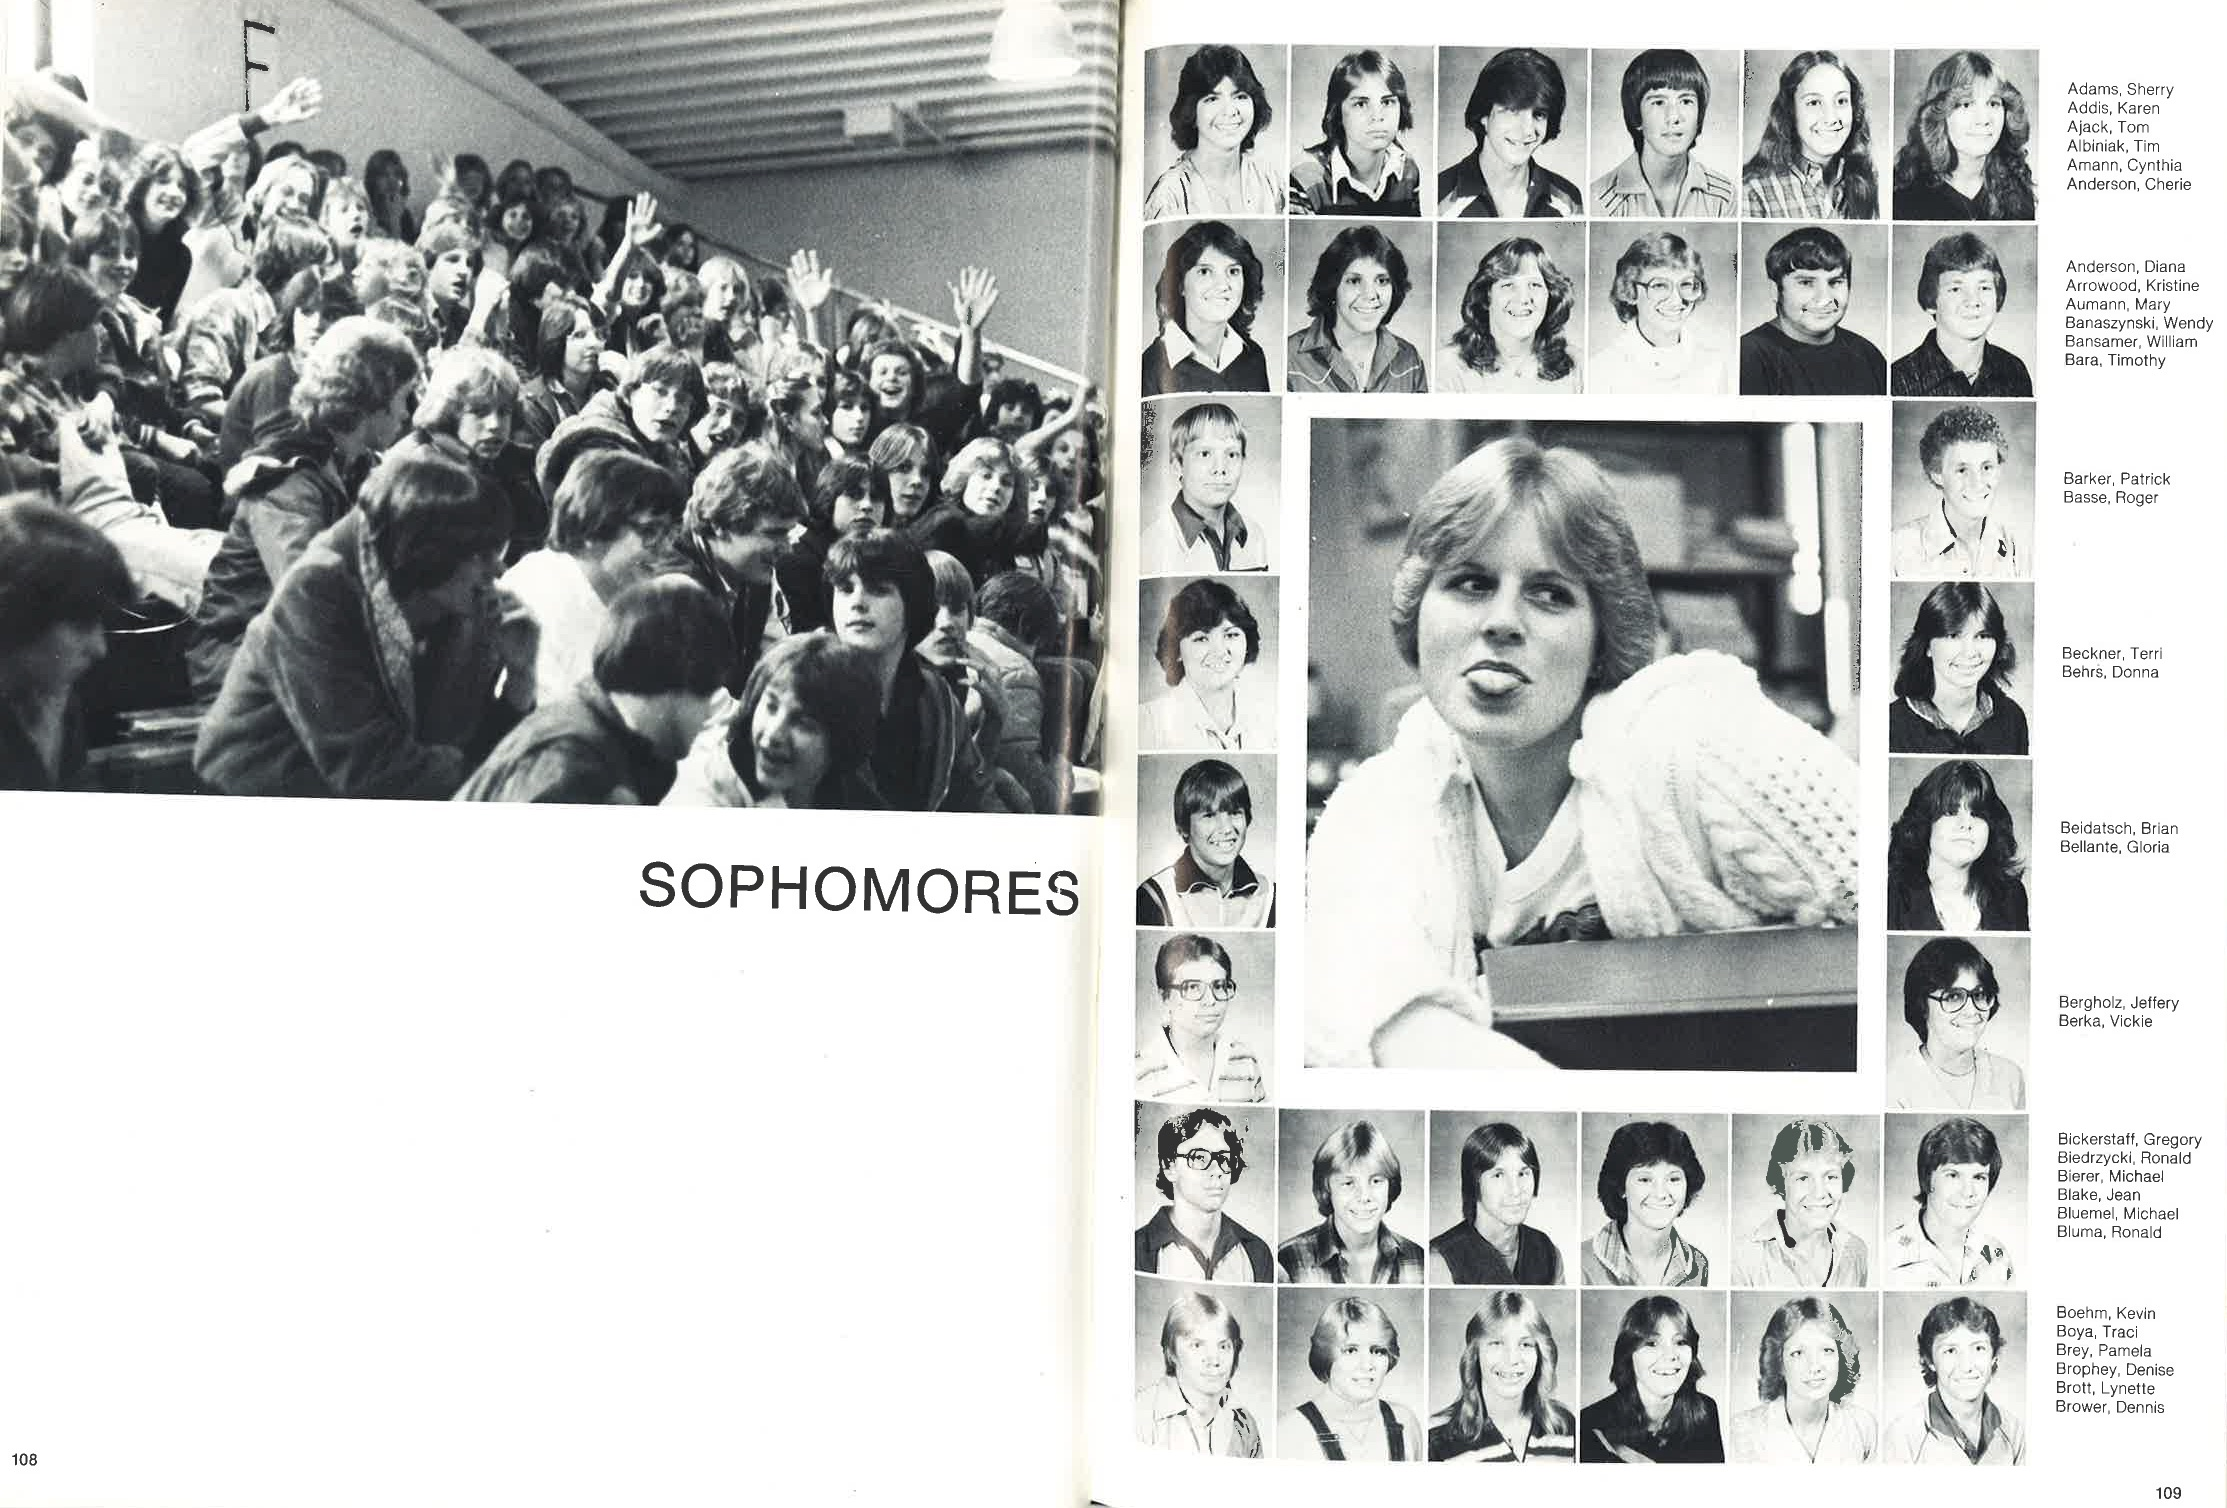 1981_Yearbook_108.jpg